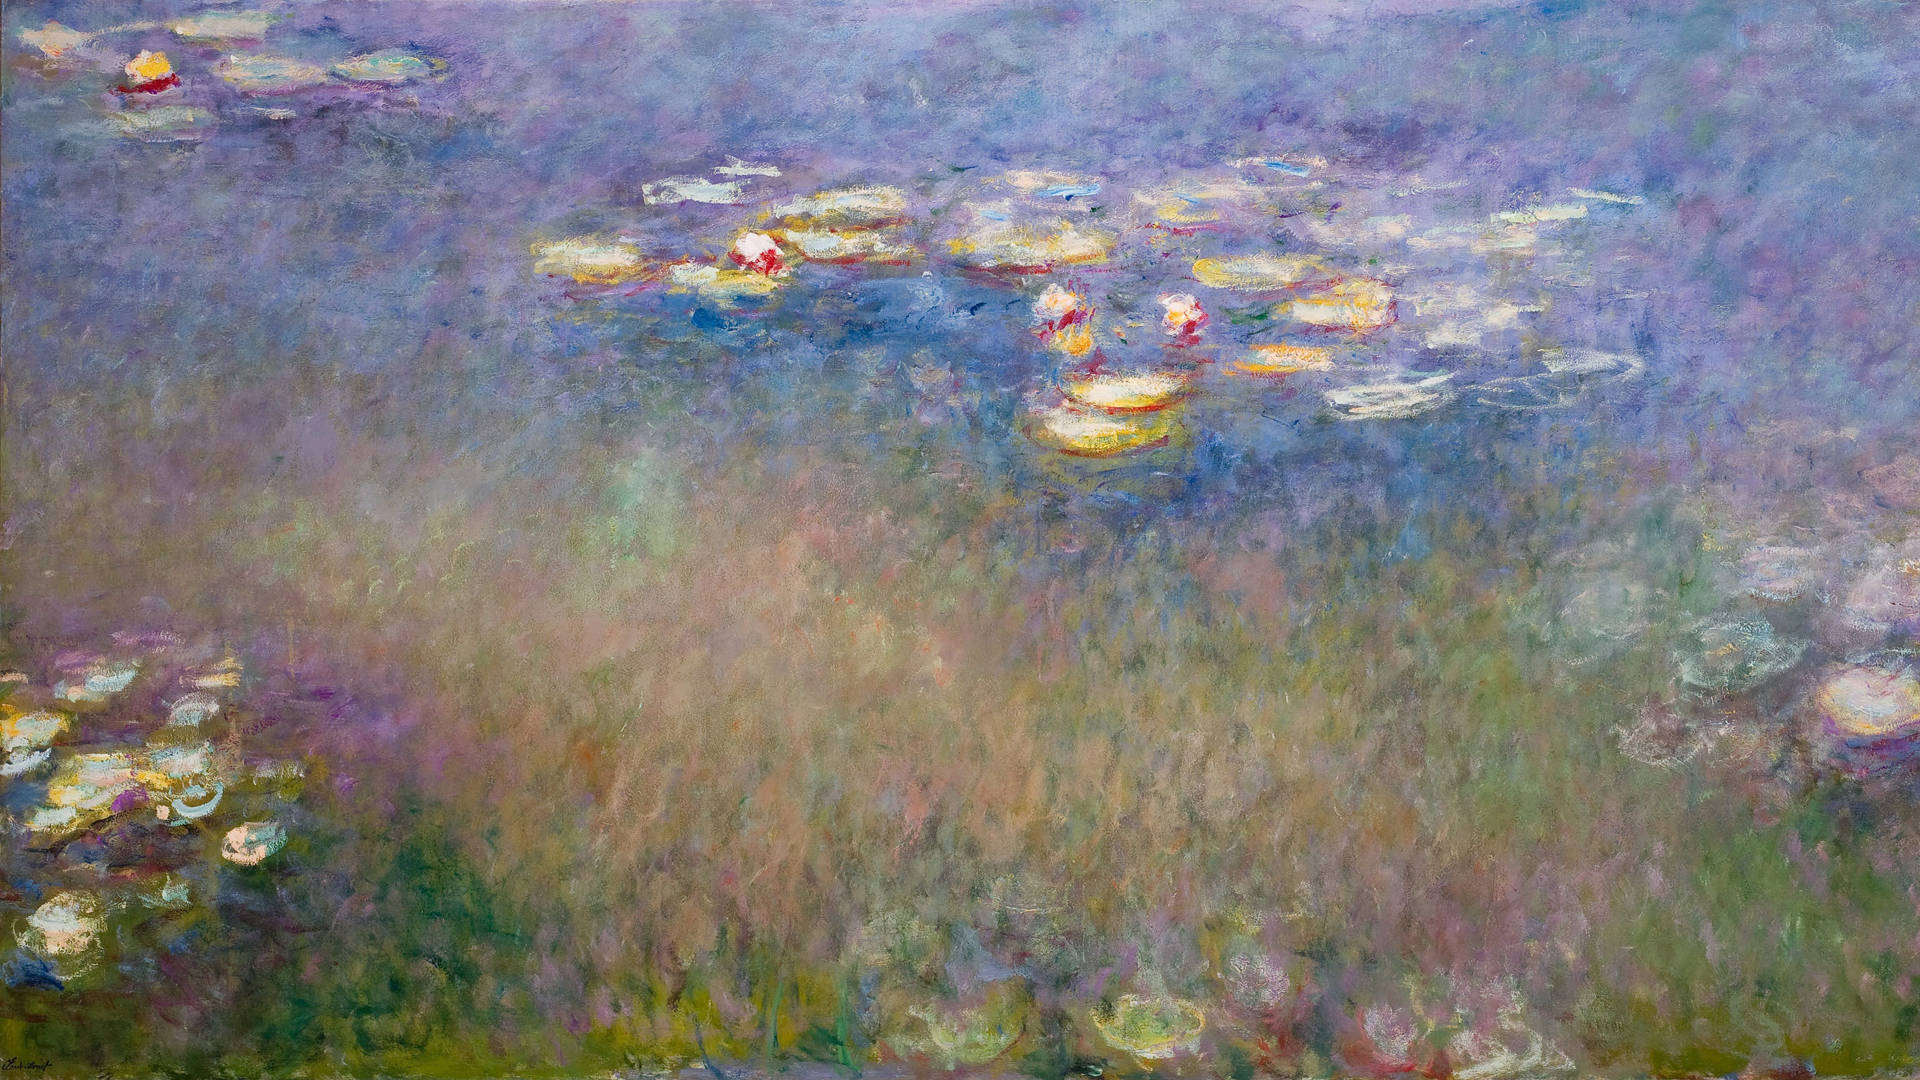 Claude Monet, 'Water Lilies (Agapanthus),' c. 1915-26. Courtesy of the Fine Arts Museums of San Francisco